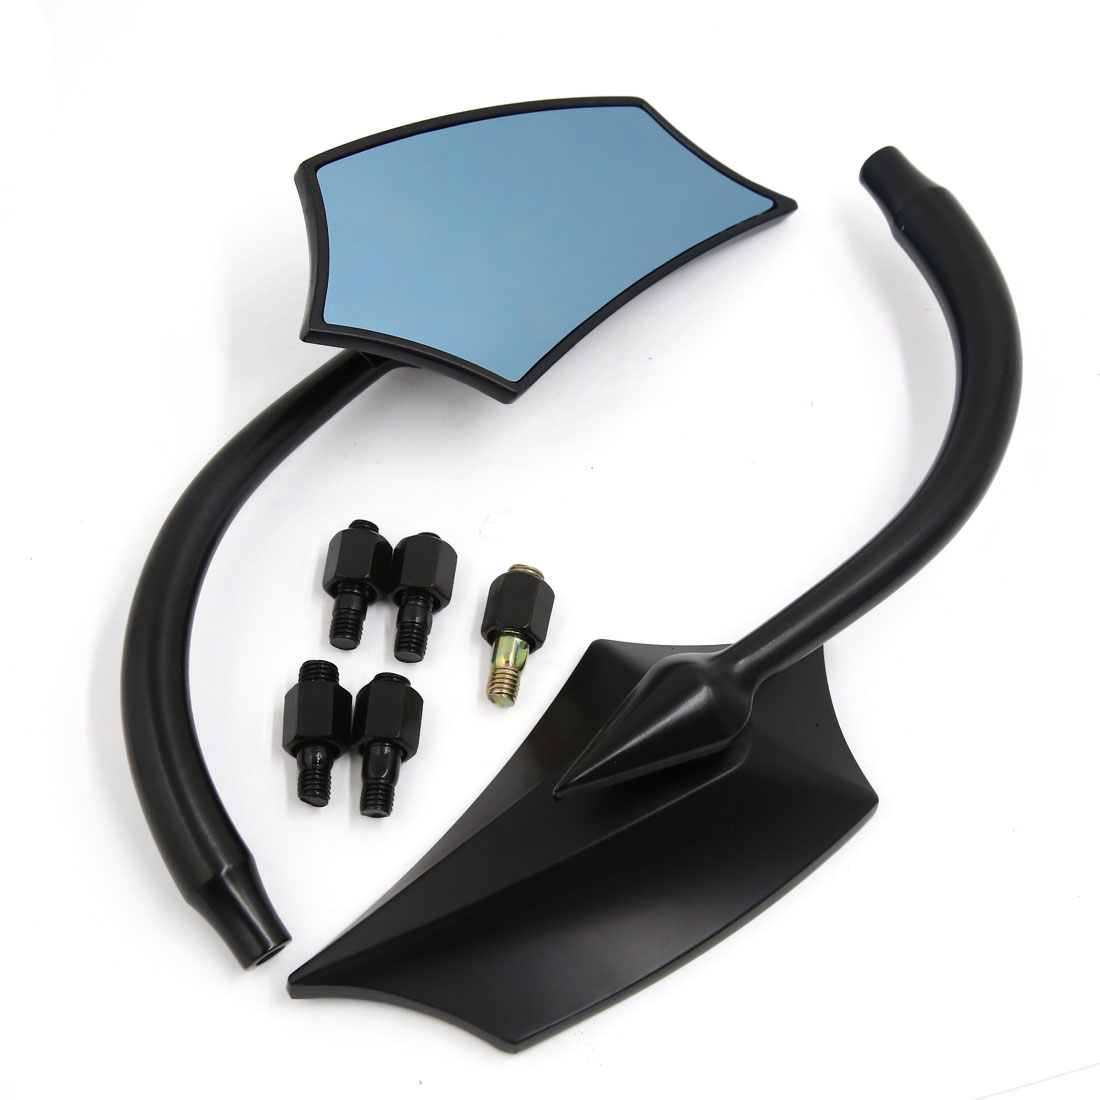 2 Pcs 10mm/8mm Adjustable Poparized Rear Side View Mirror for Motorcycle